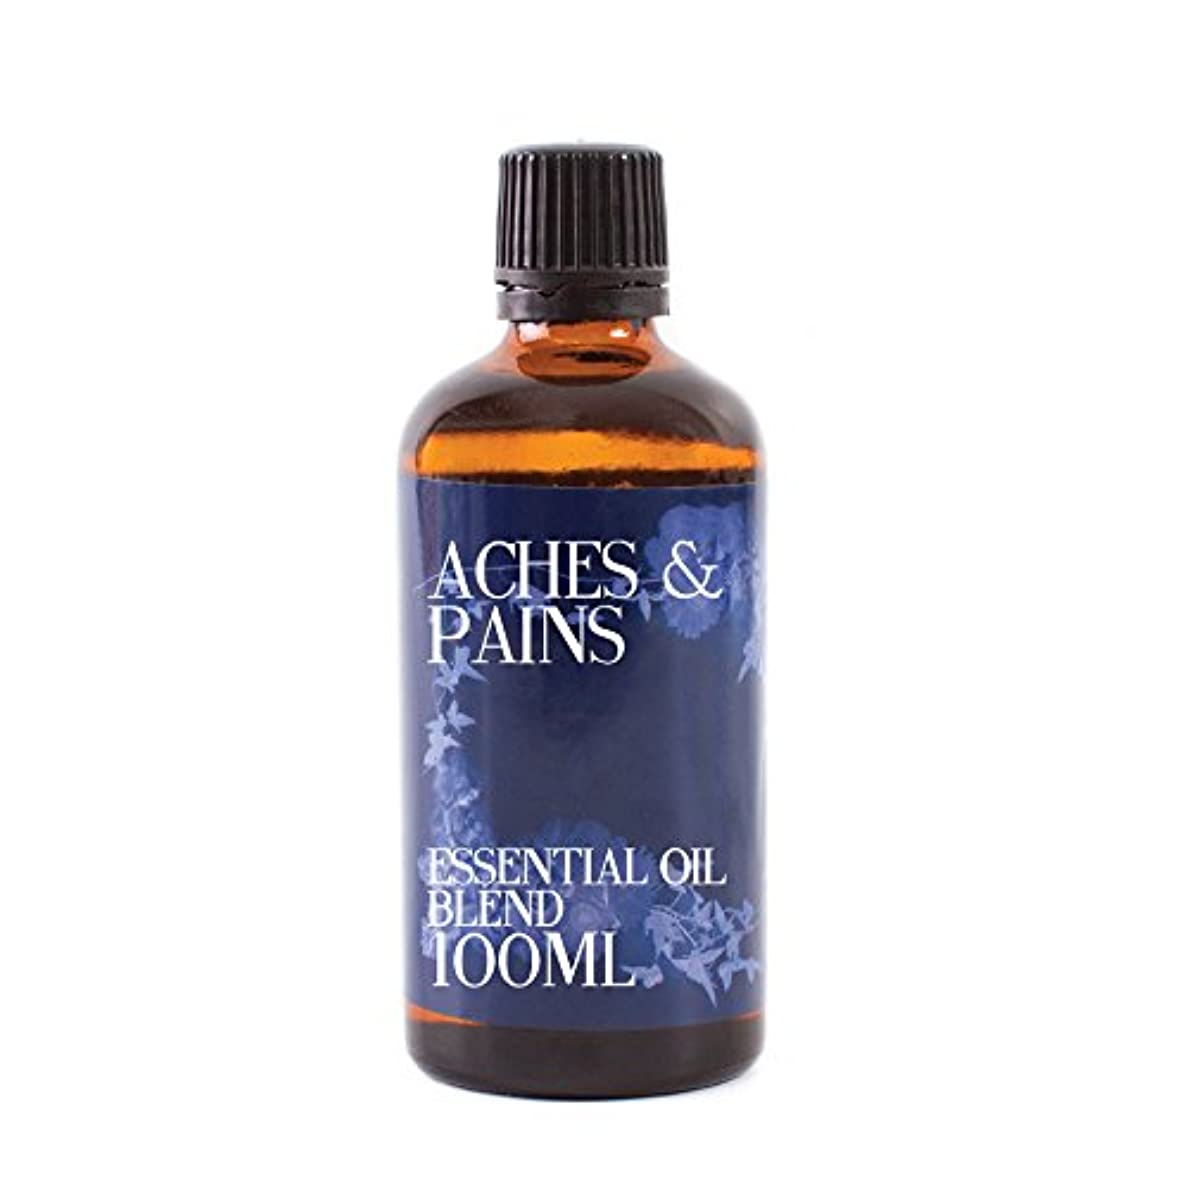 管理うぬぼれ移住するMystic Moments | Aches and Pains Essential Oil Blend - 100ml - 100% Pure